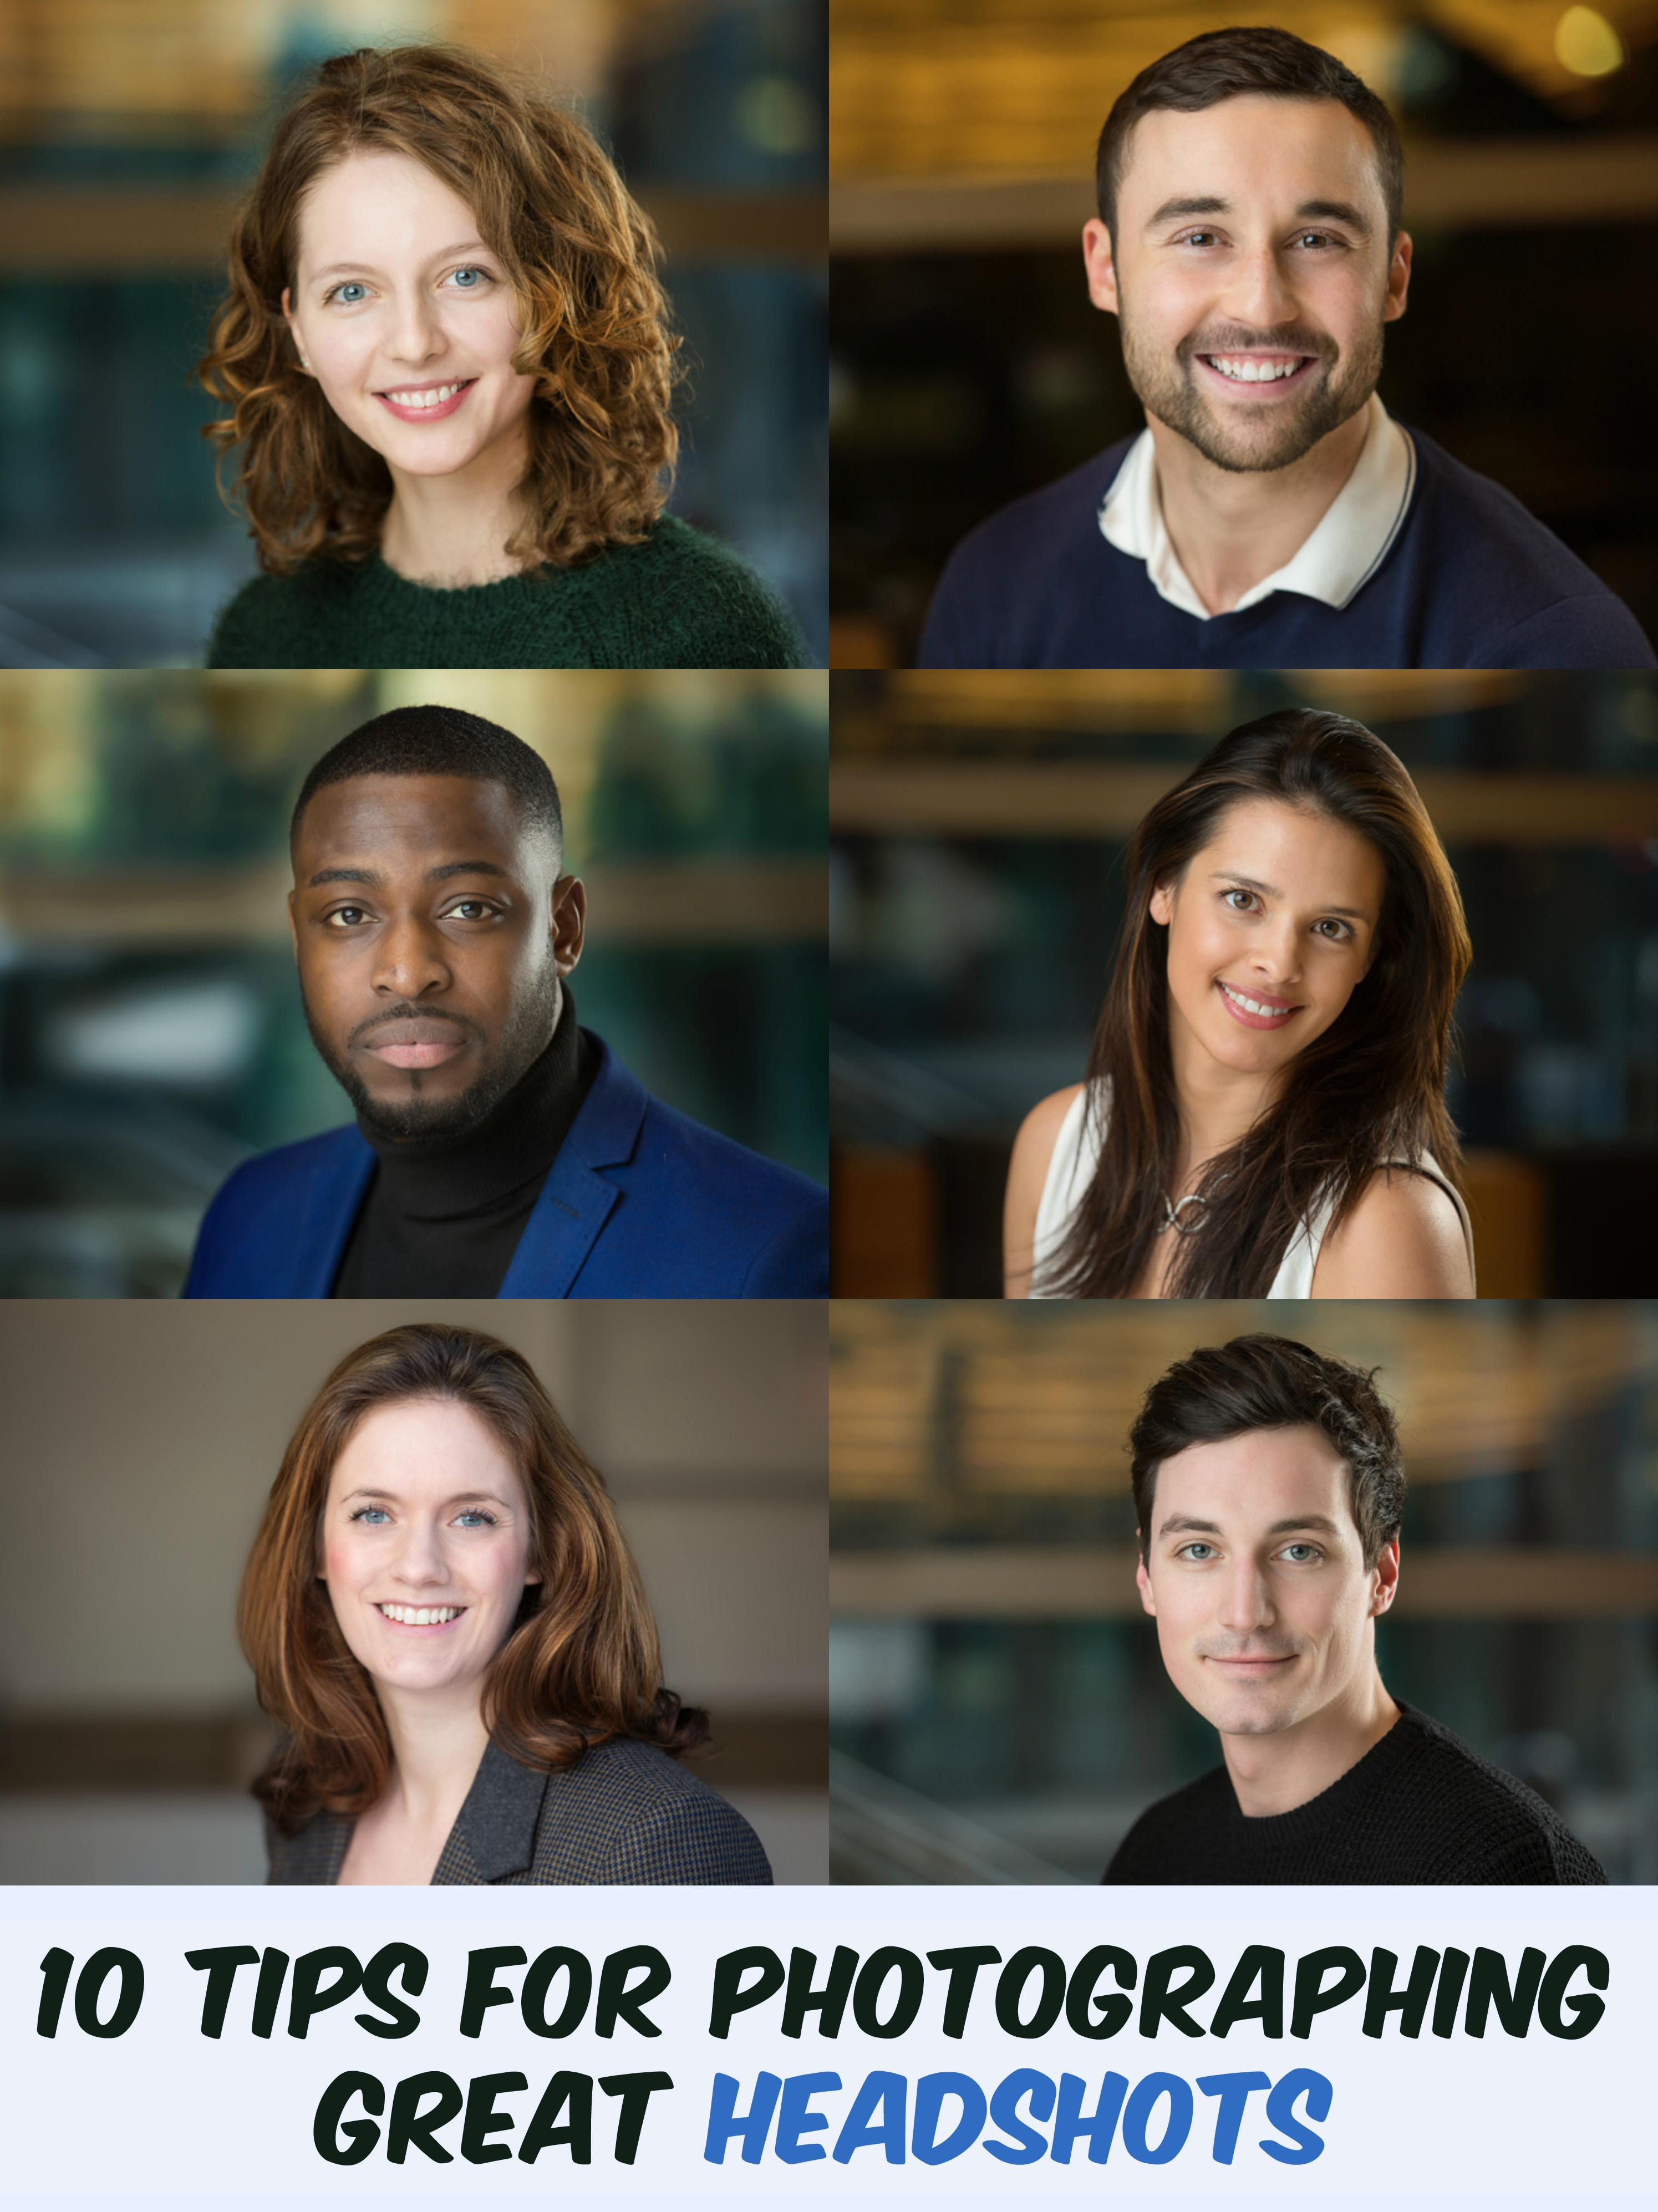 10 Tips for Photographing Great Headshots